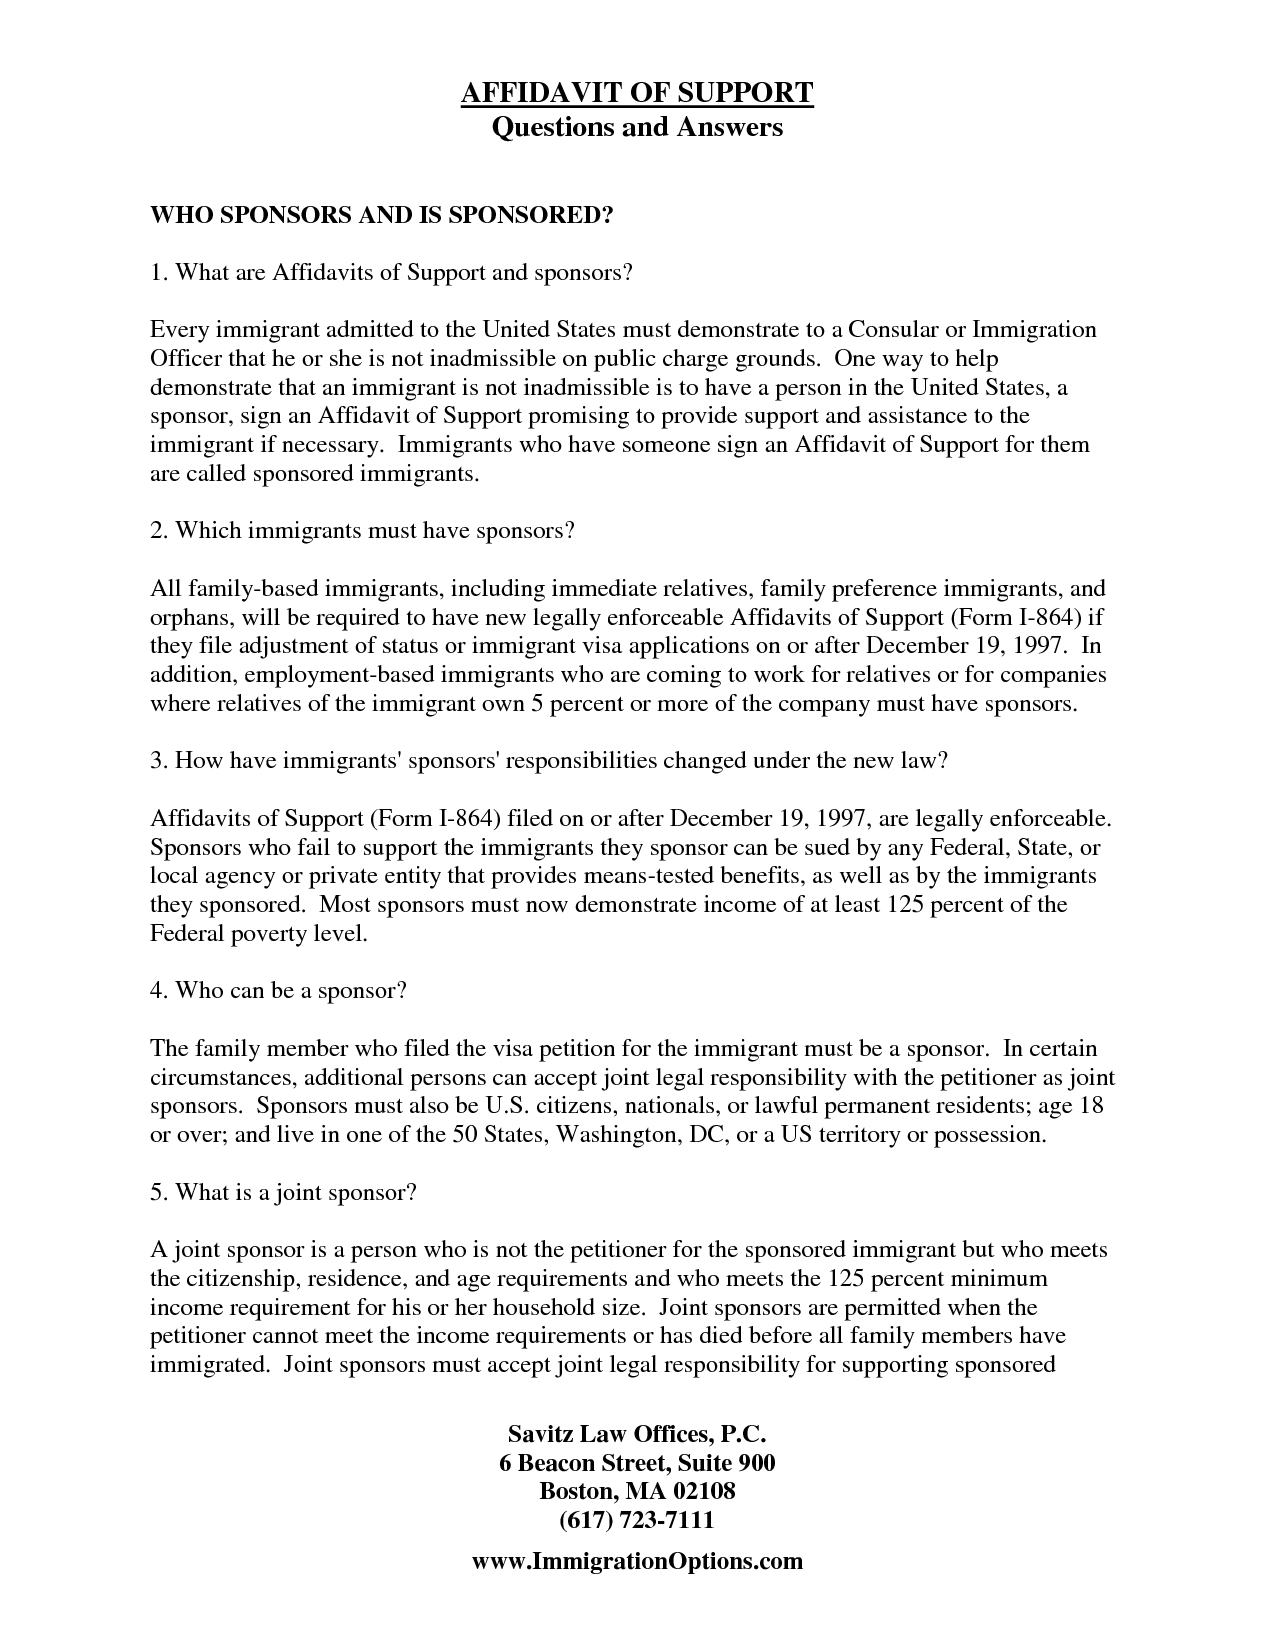 Affidavit Of Support Sample - Free Printable Documents  Support